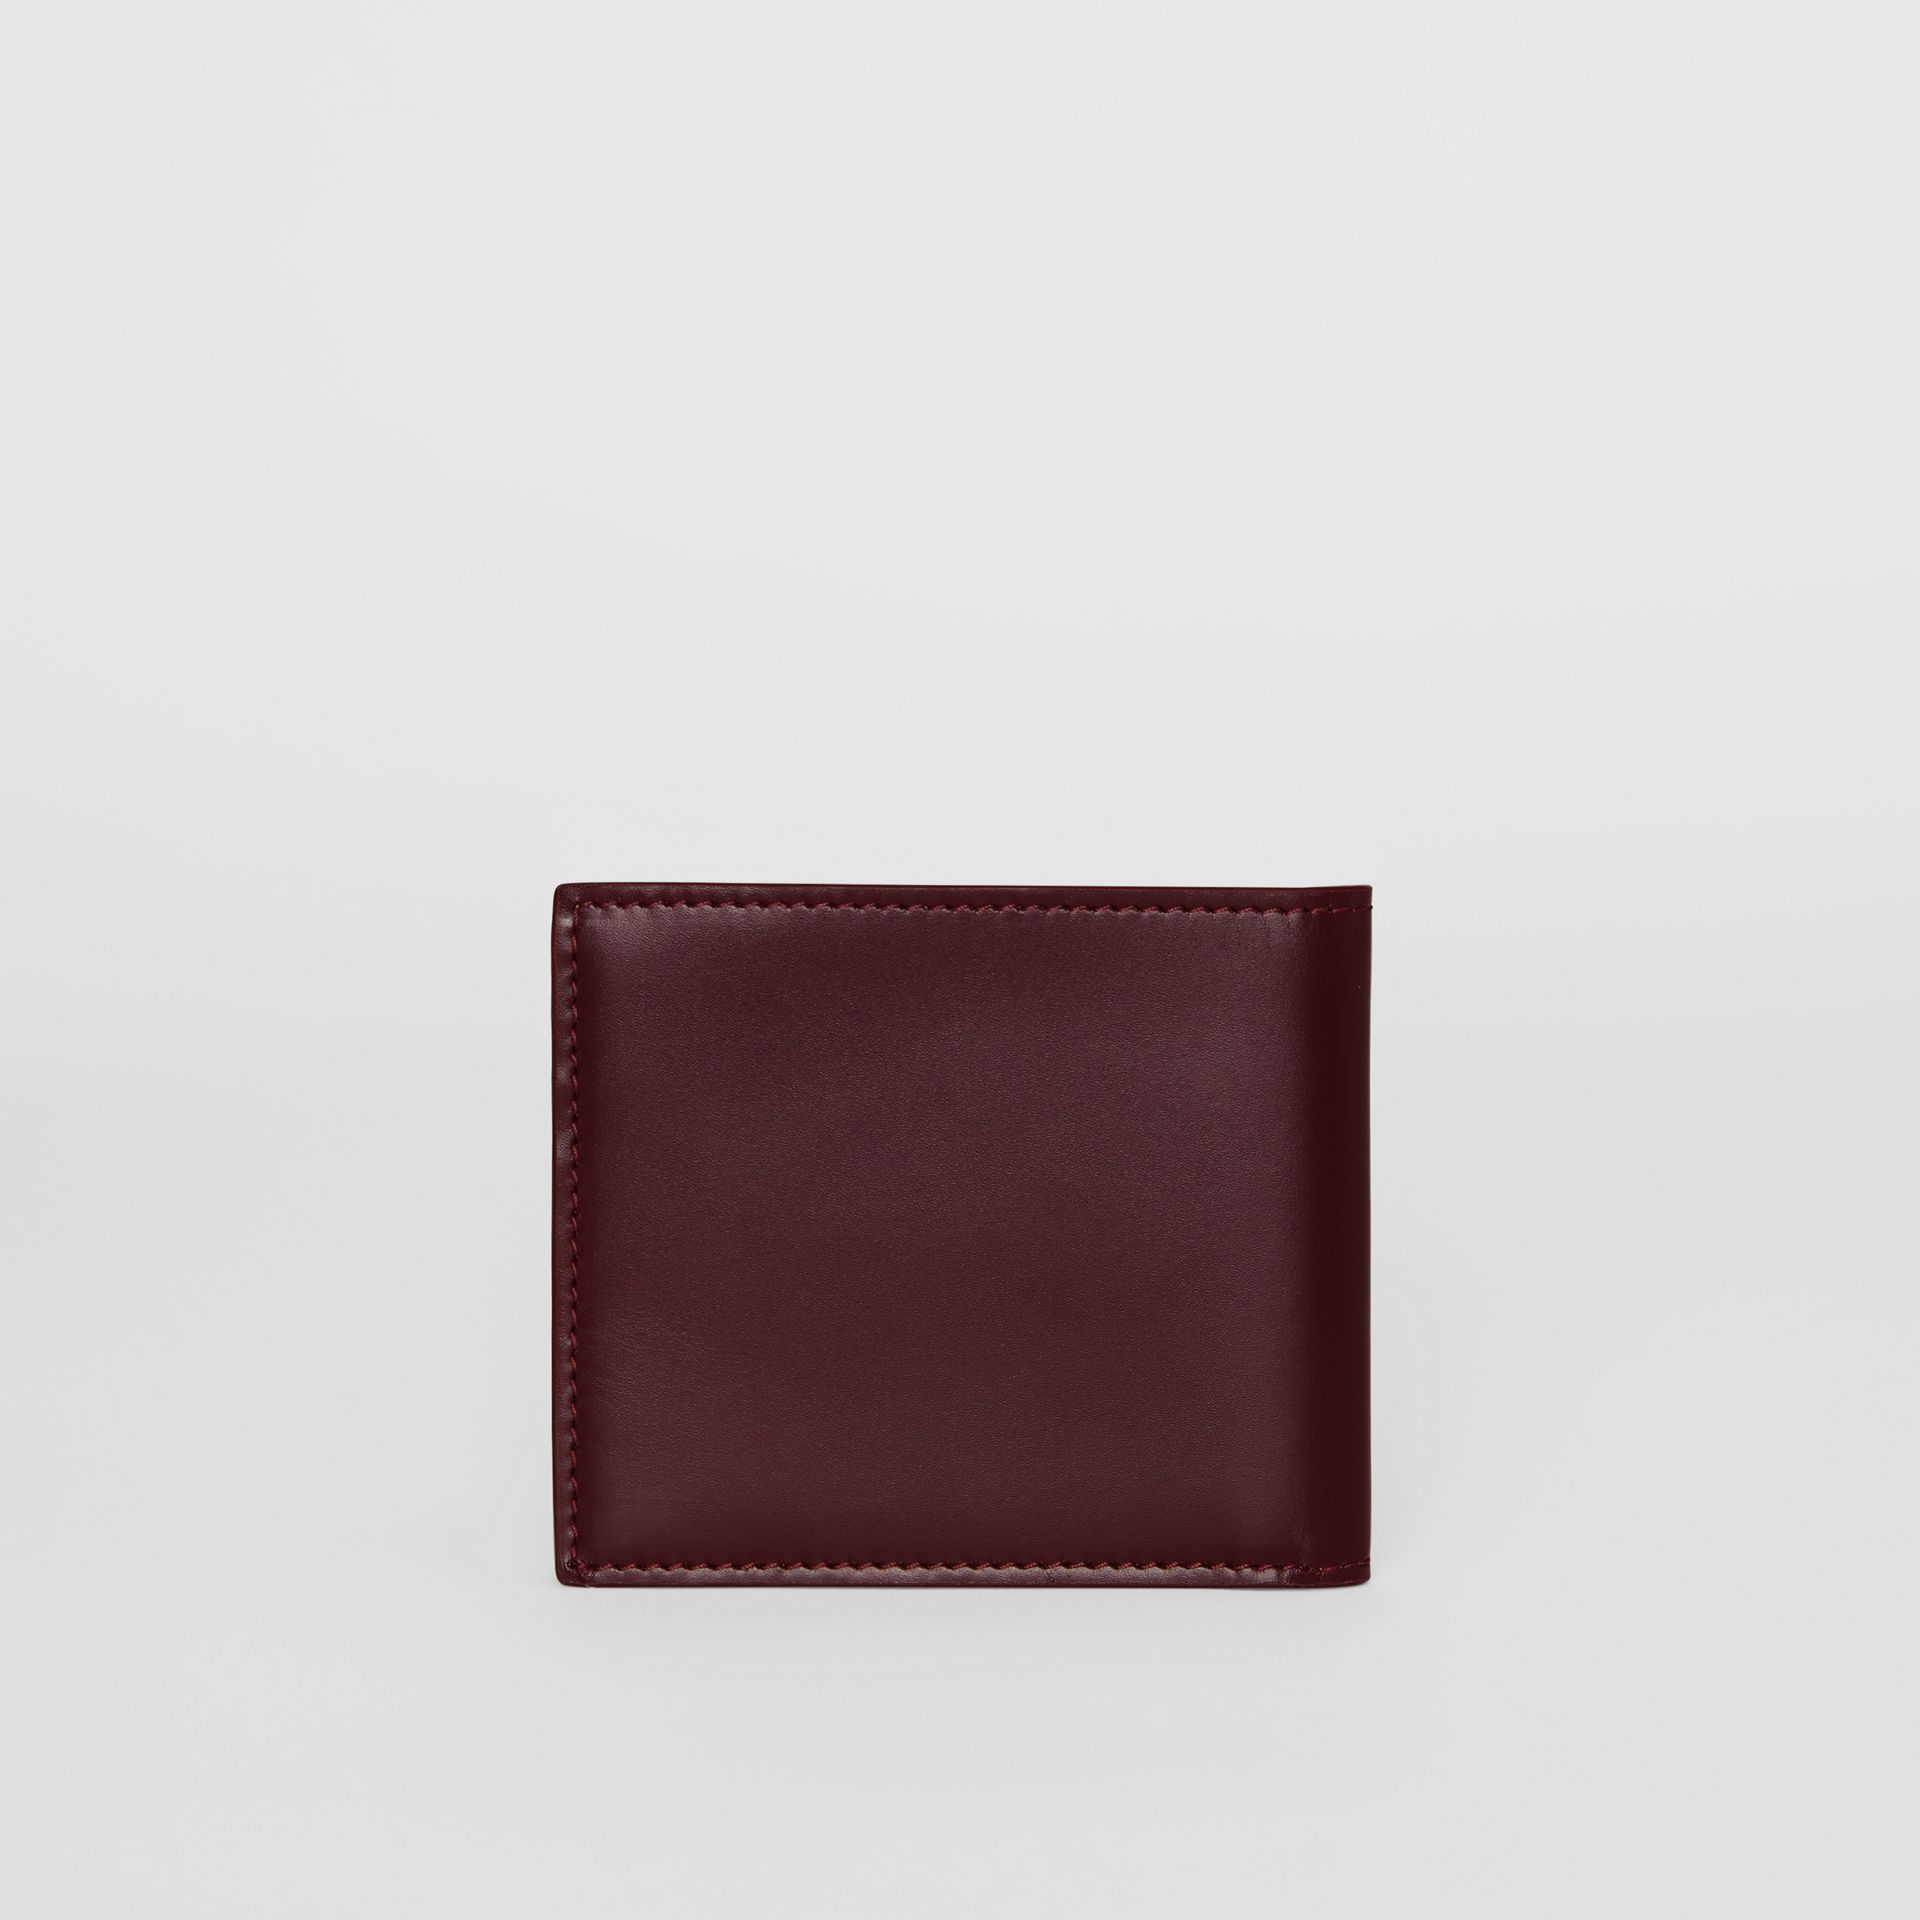 Portefeuille à rabat multidevise en cuir Monogram (Oxblood) | Burberry - photo de la galerie 4